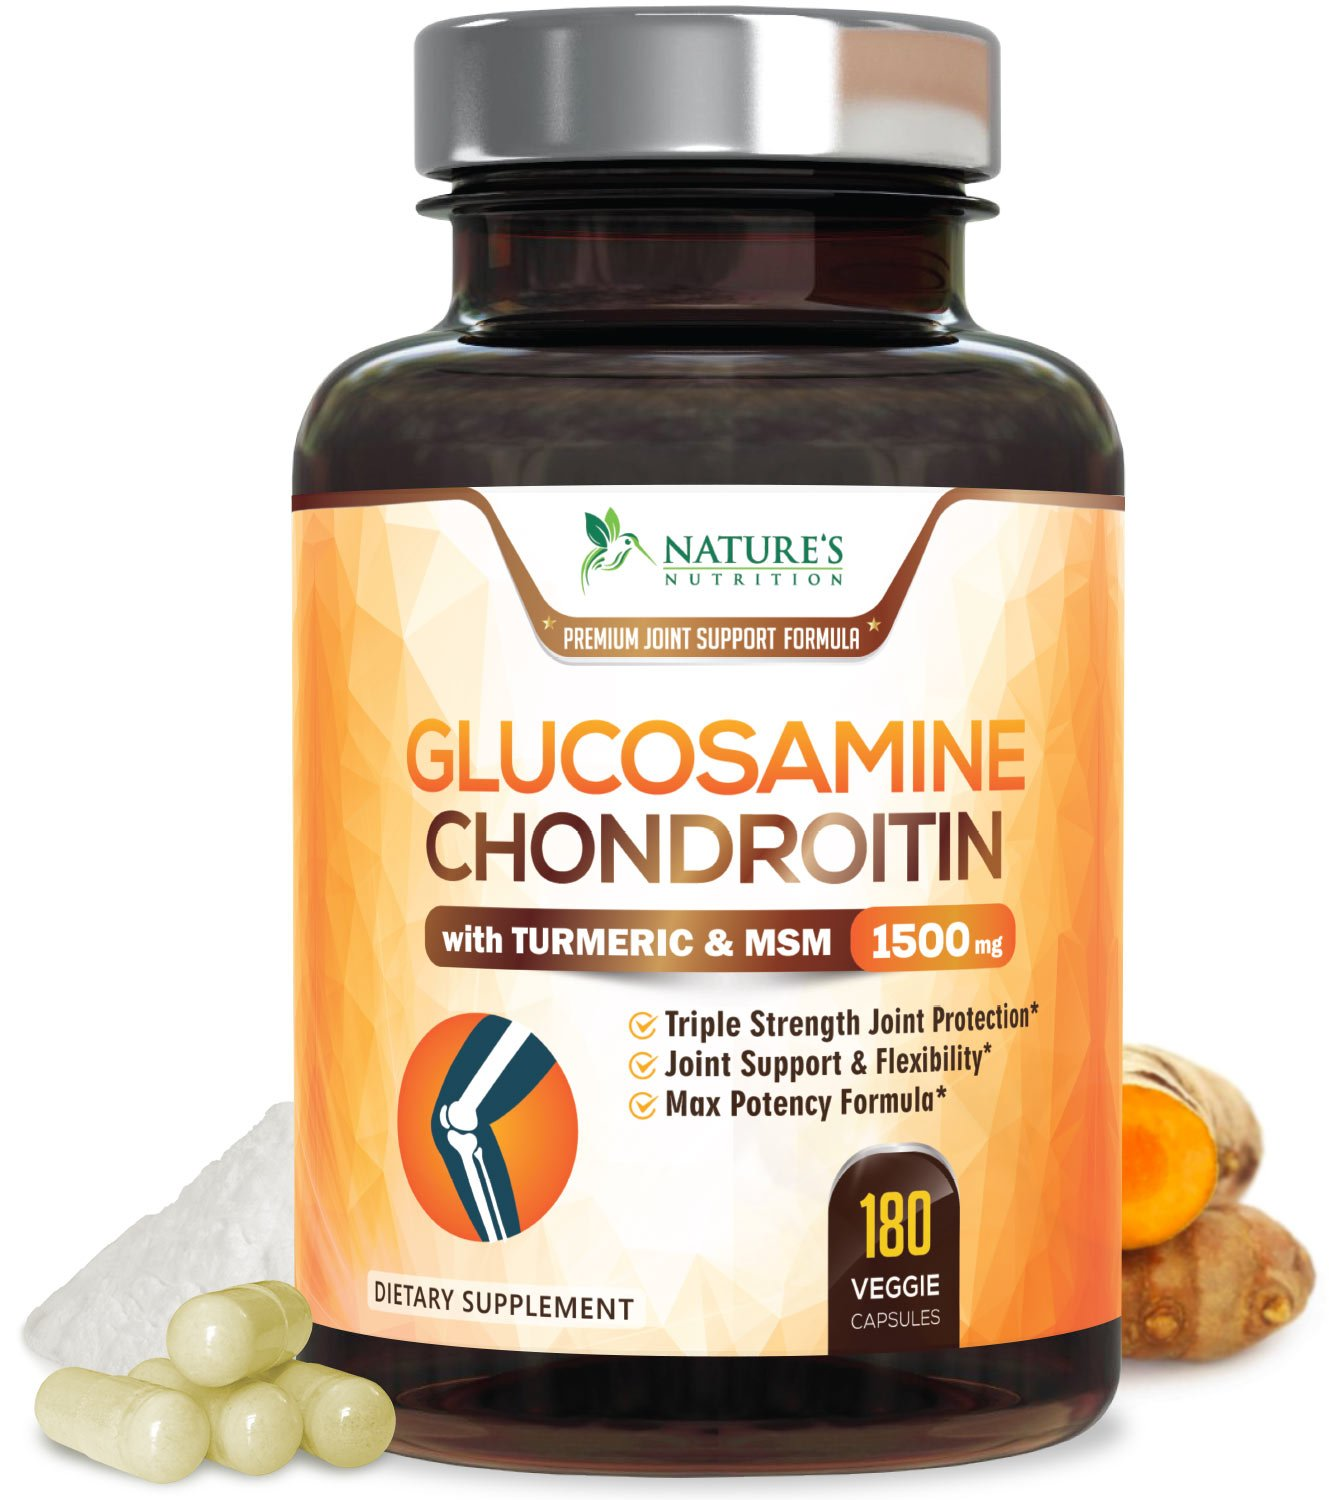 Glucosamine Chondroitin MSM Turmeric, 3X Triple Strength Standardized for Hip, Joint & Back Pain Relief. Anti Inflammatory Supplement - Made in USA - Anti Inflammatory Supplement - 180 Capsules by Nature's Nutrition